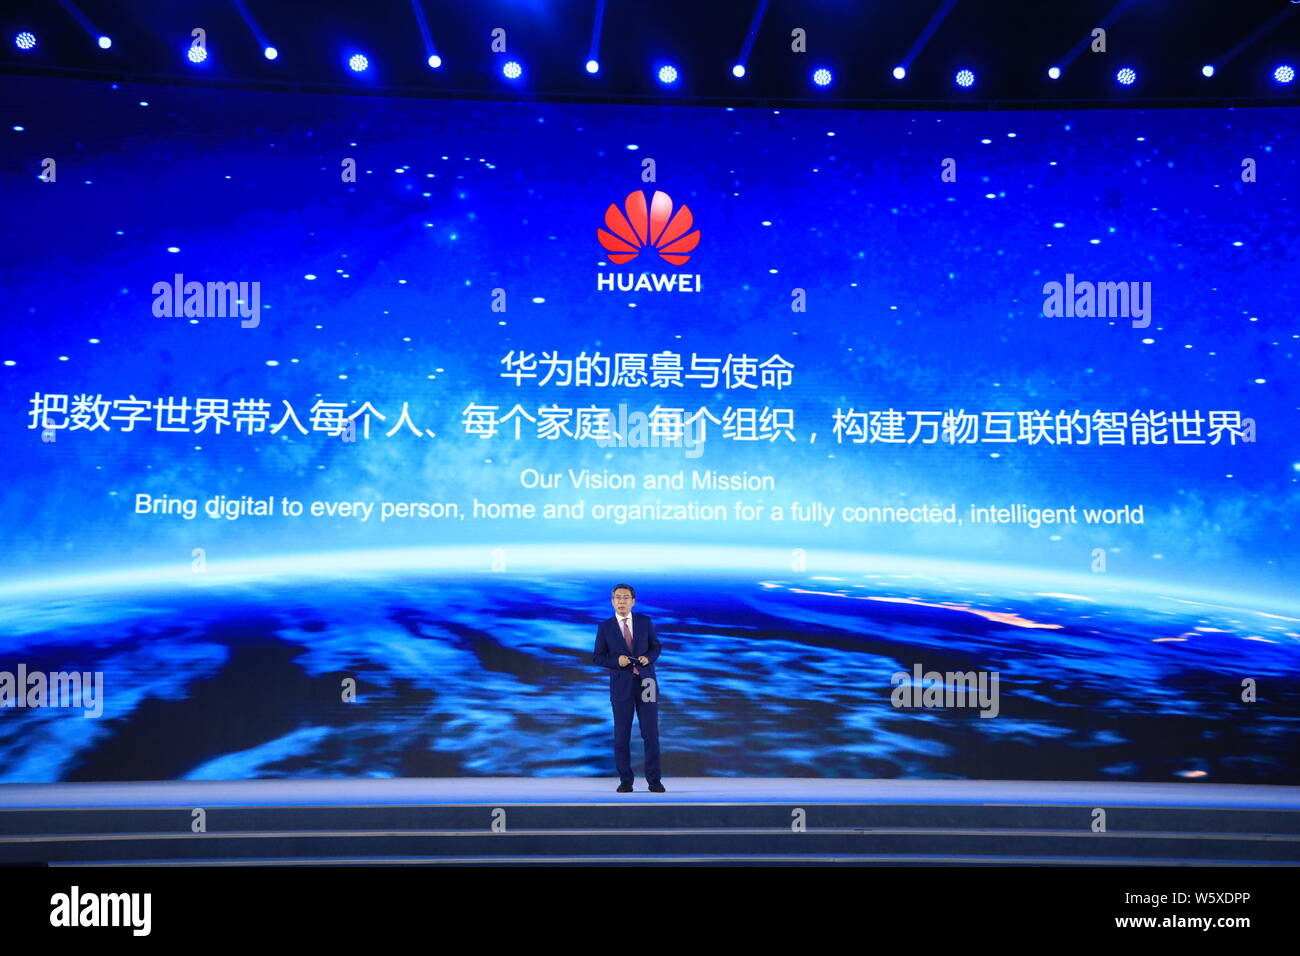 Yan Lida, Director and President of Huawei Enterprise Business Group